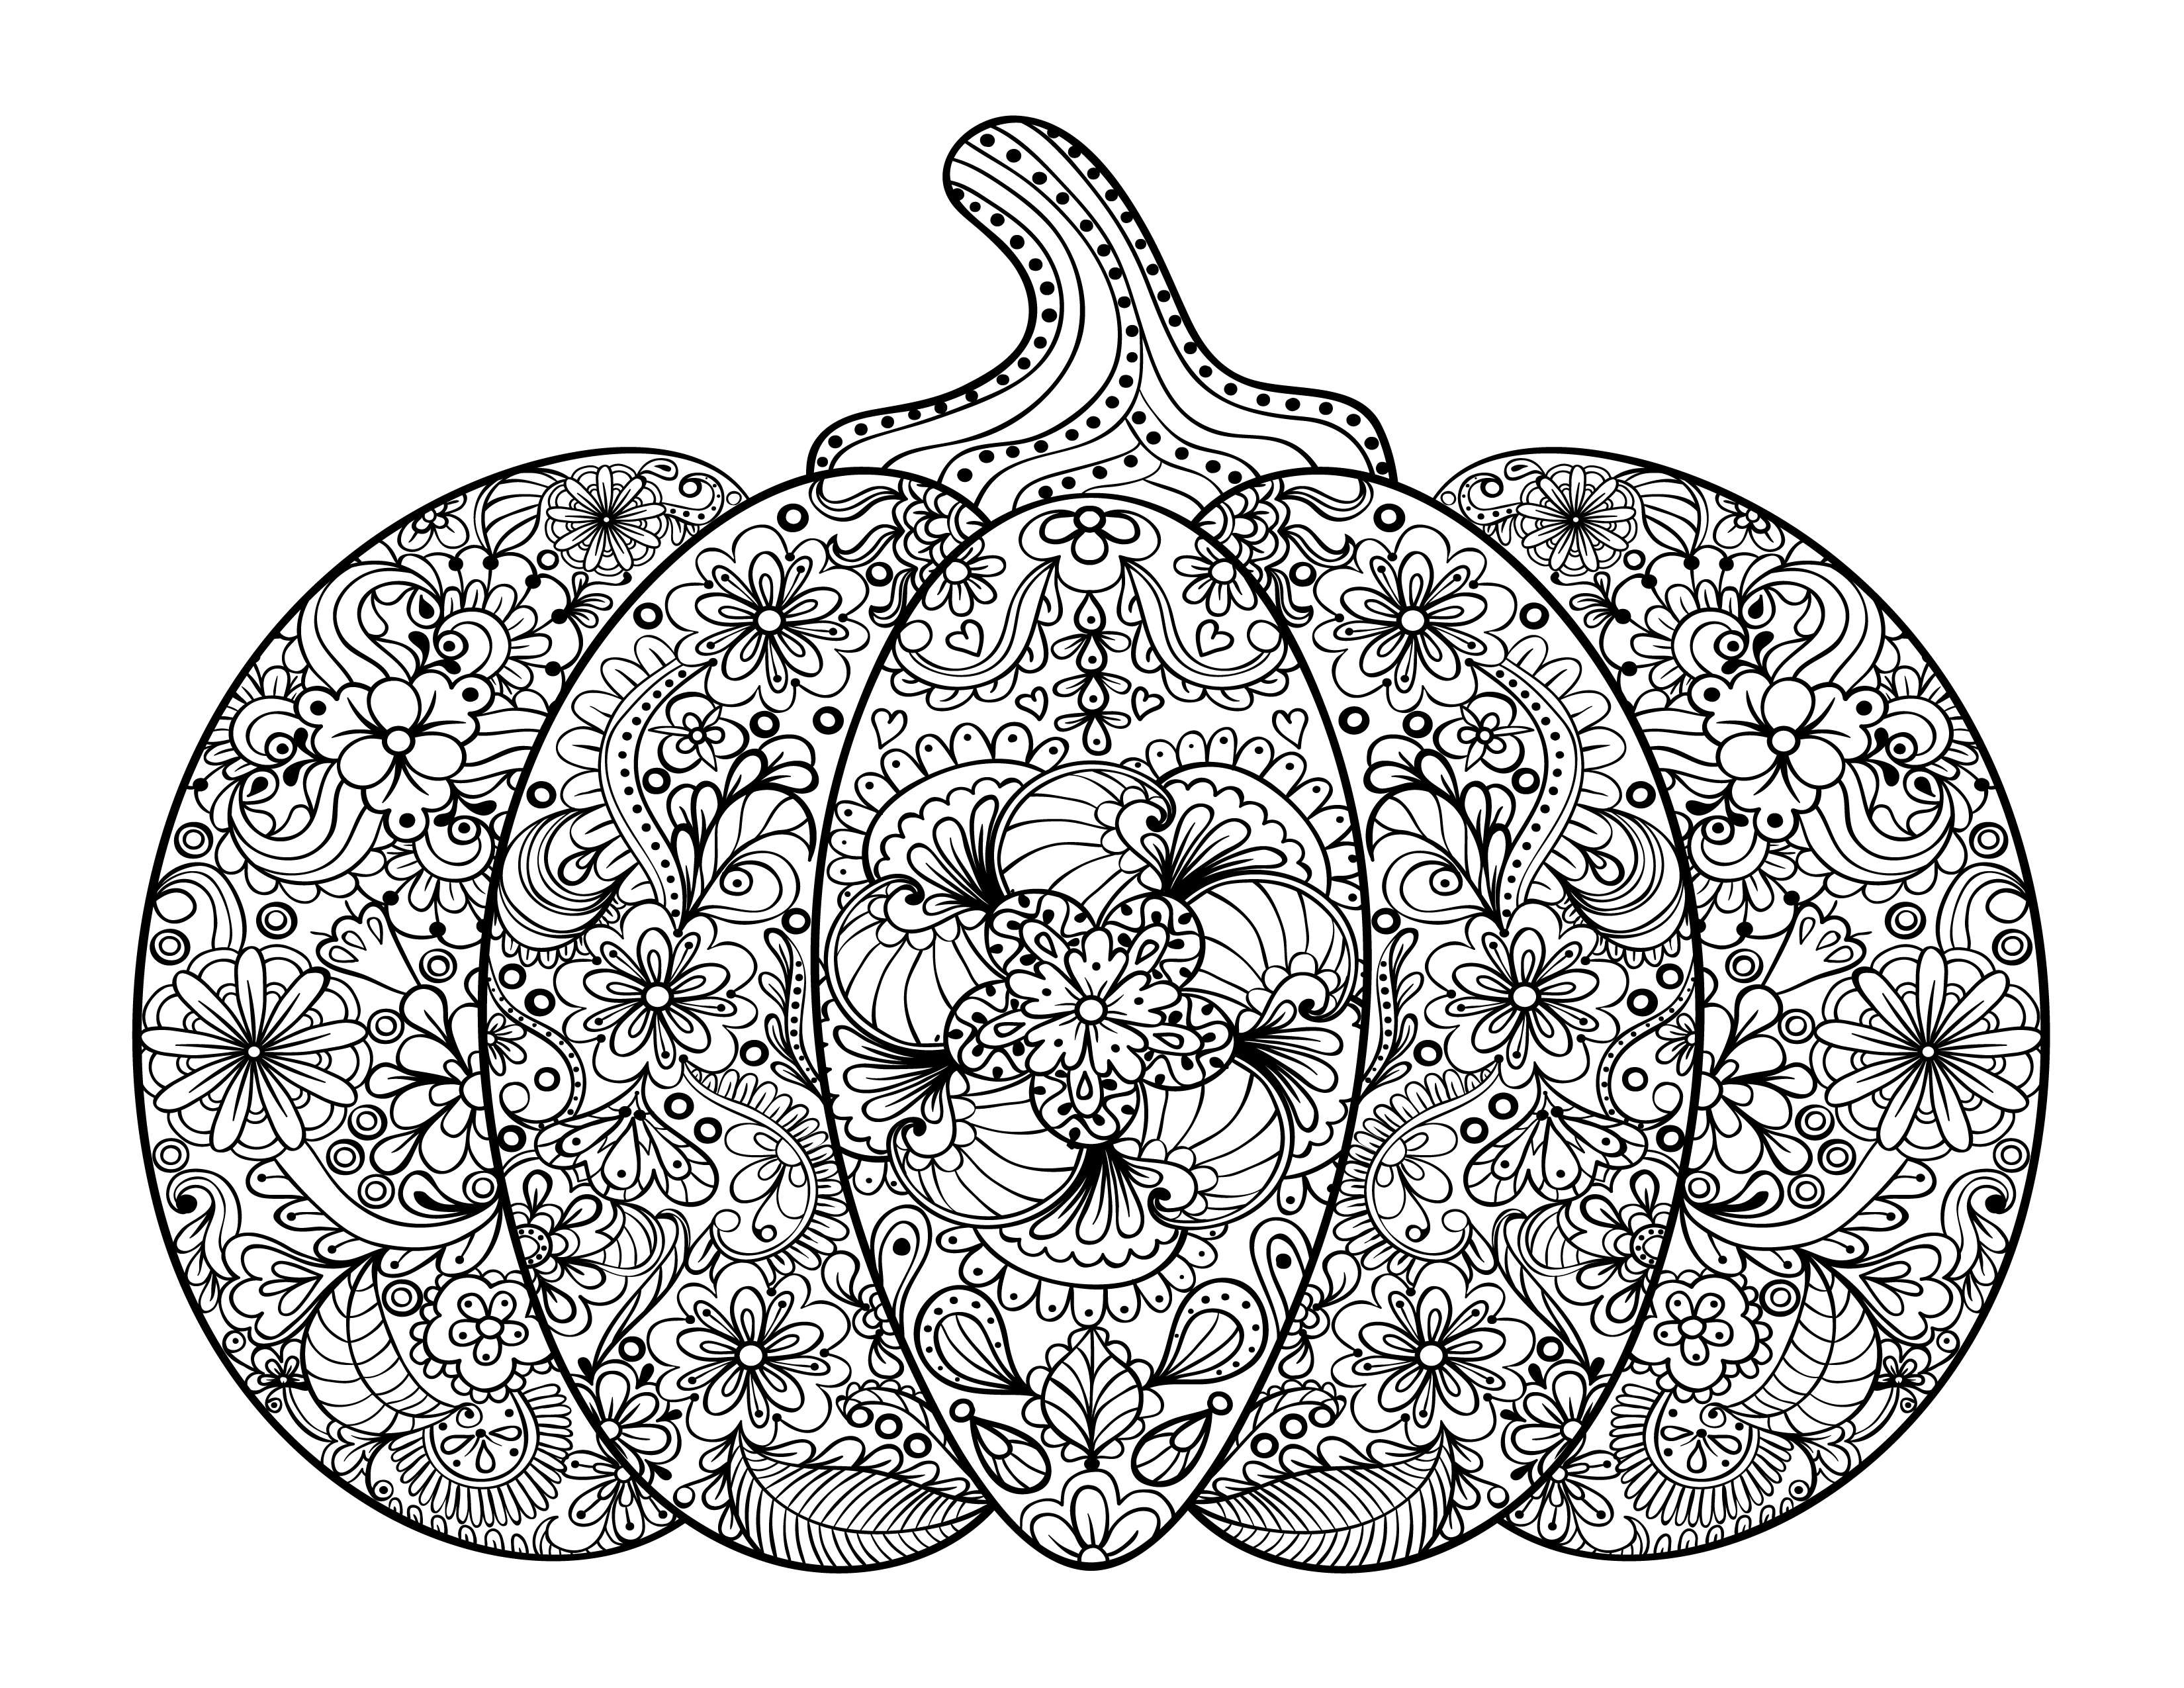 free pumpkin coloring pages printable free printable pumpkin coloring pages for kids cool2bkids coloring printable free pages pumpkin